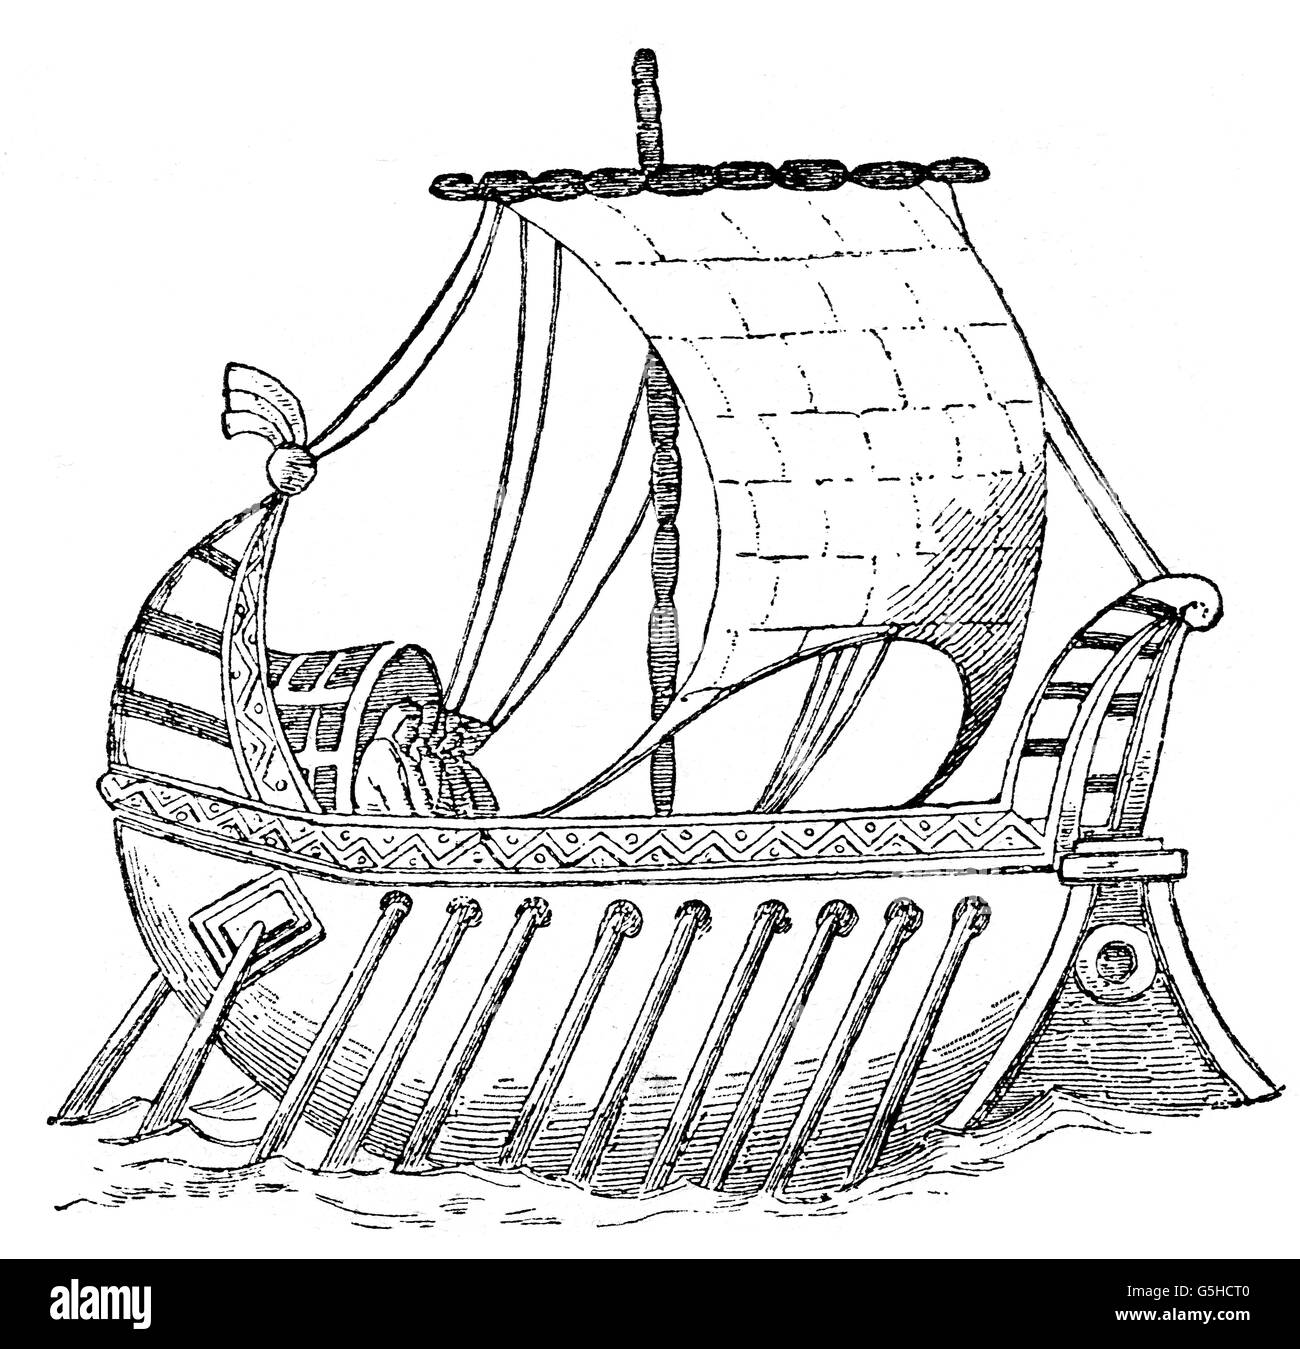 transport / transportation, navigation, galleys, galley, 9th century, wood engraving, 19th century, ancient world, - Stock Image